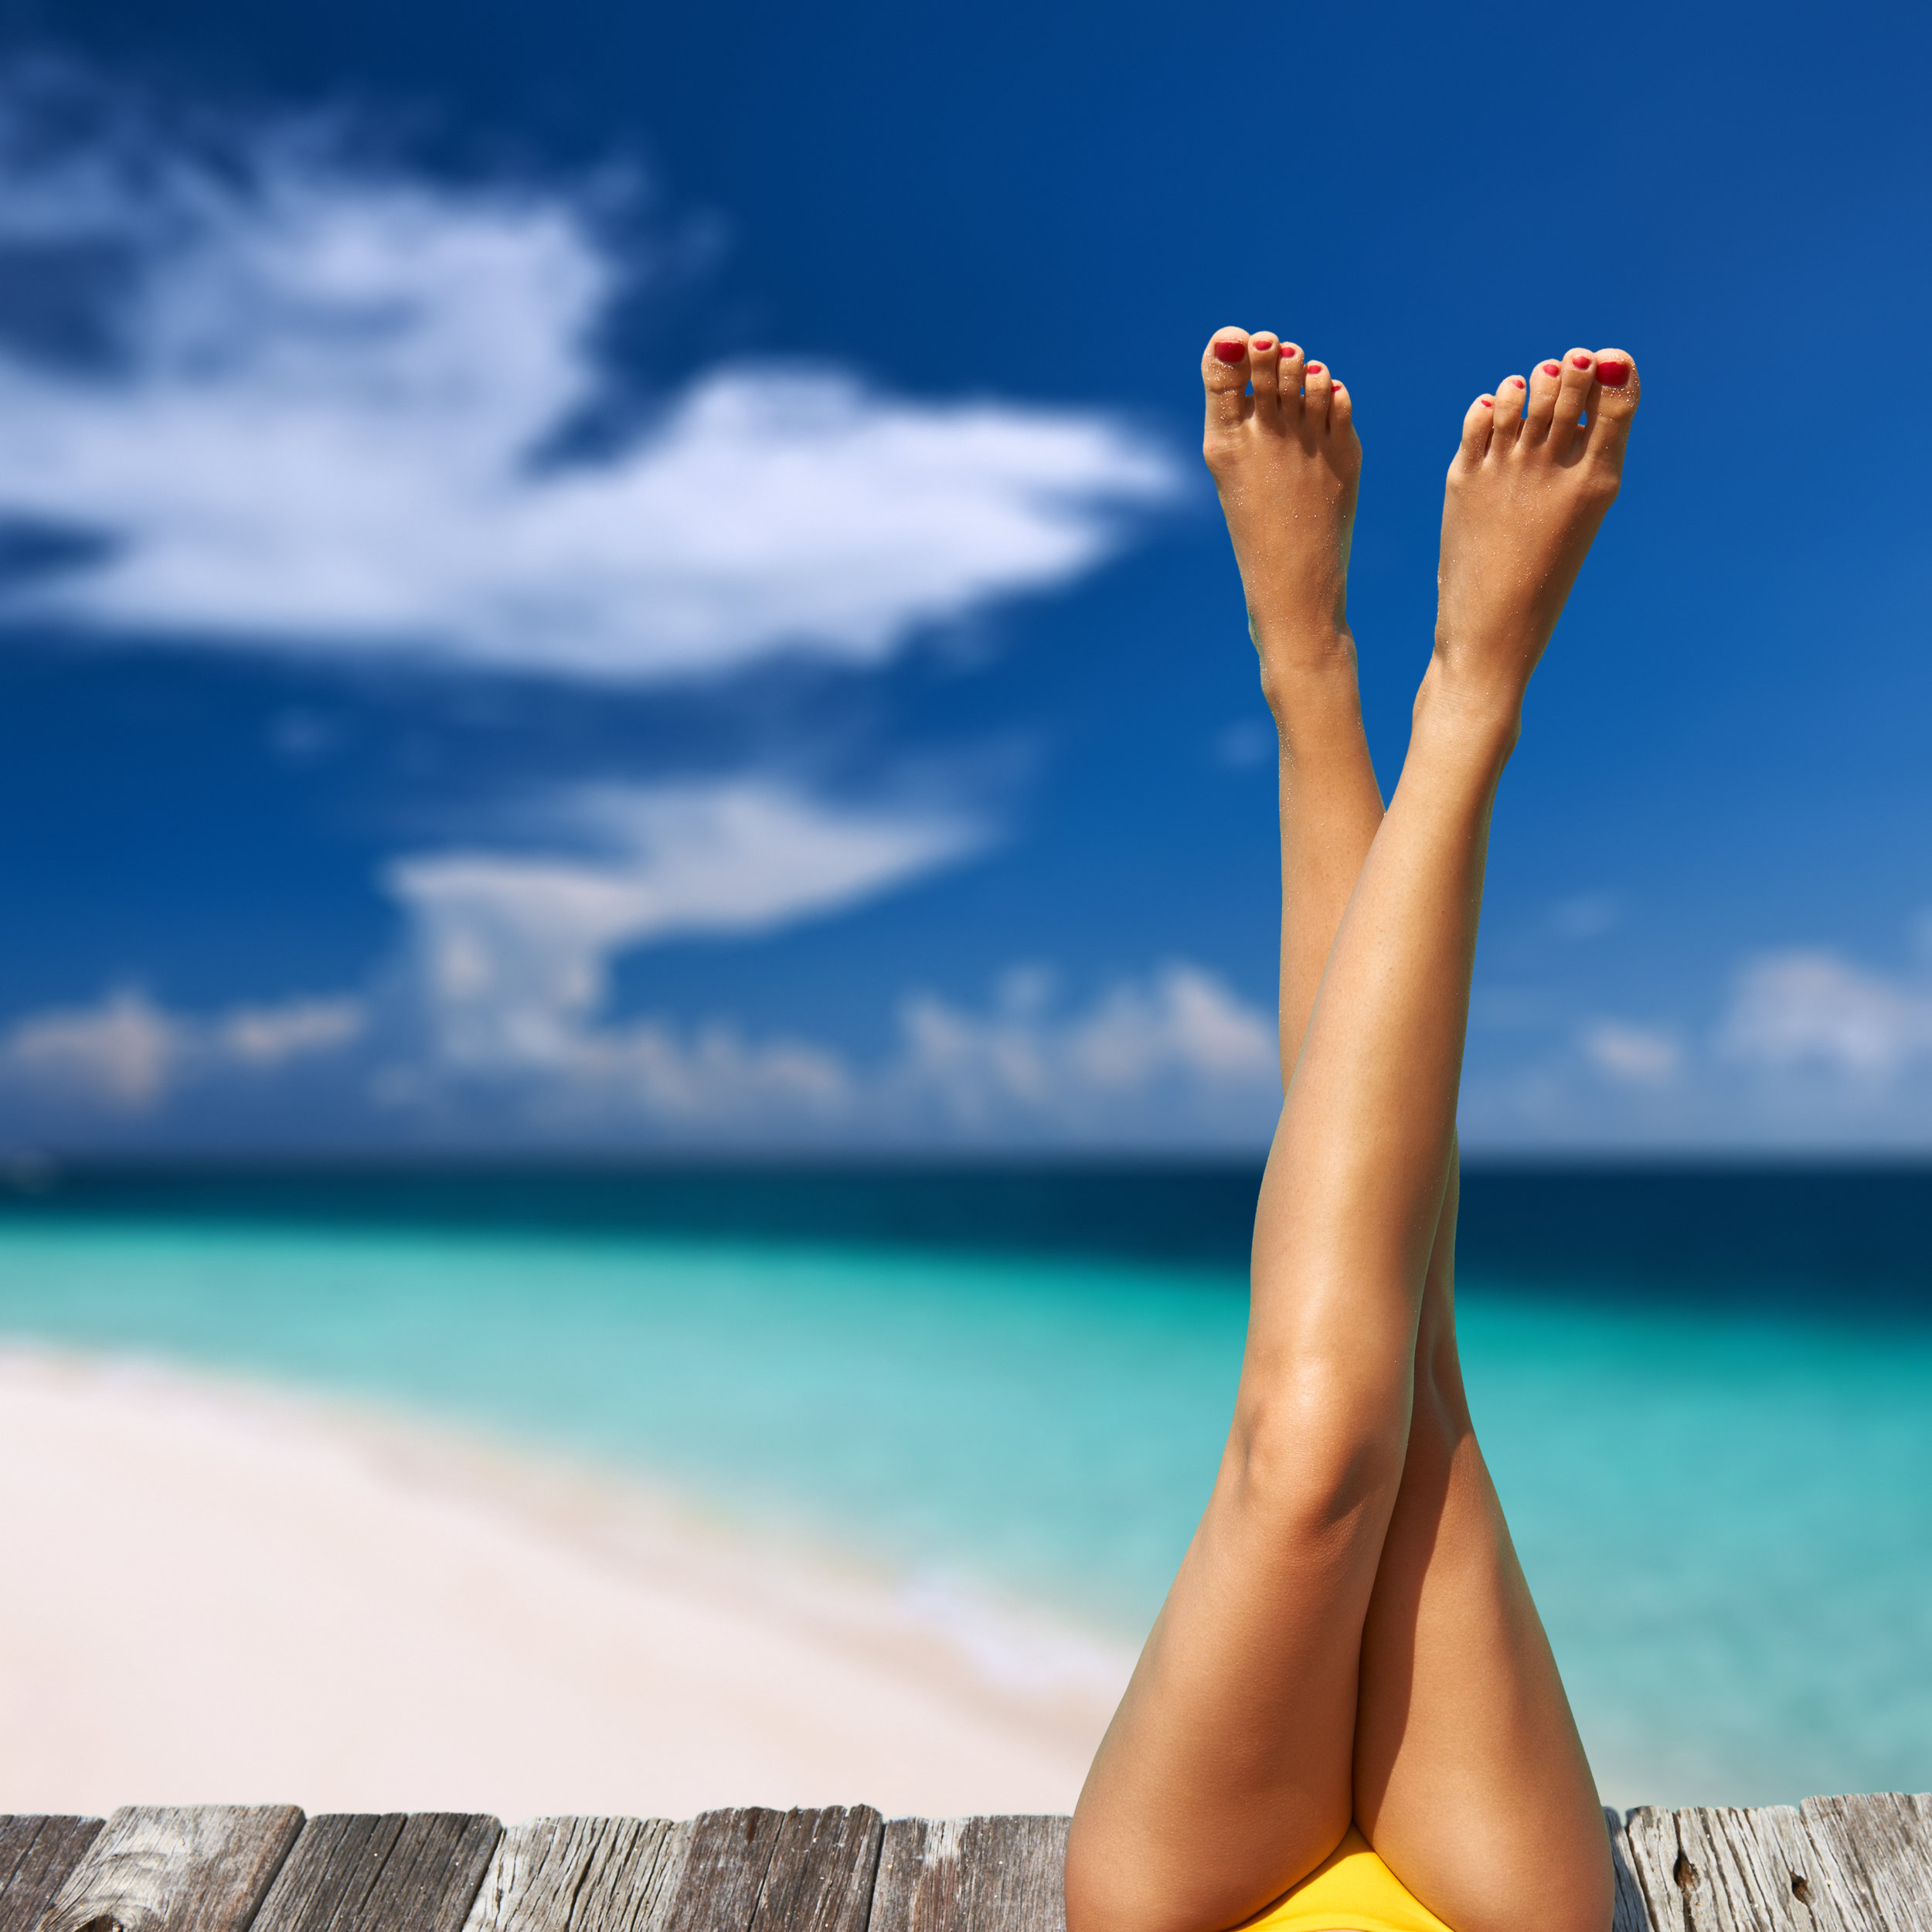 SCLEROTHERAPY TREATMENTS CAN HELP YOU FEEL CONFIDENT IN YOUR LEGS, AGAIN!